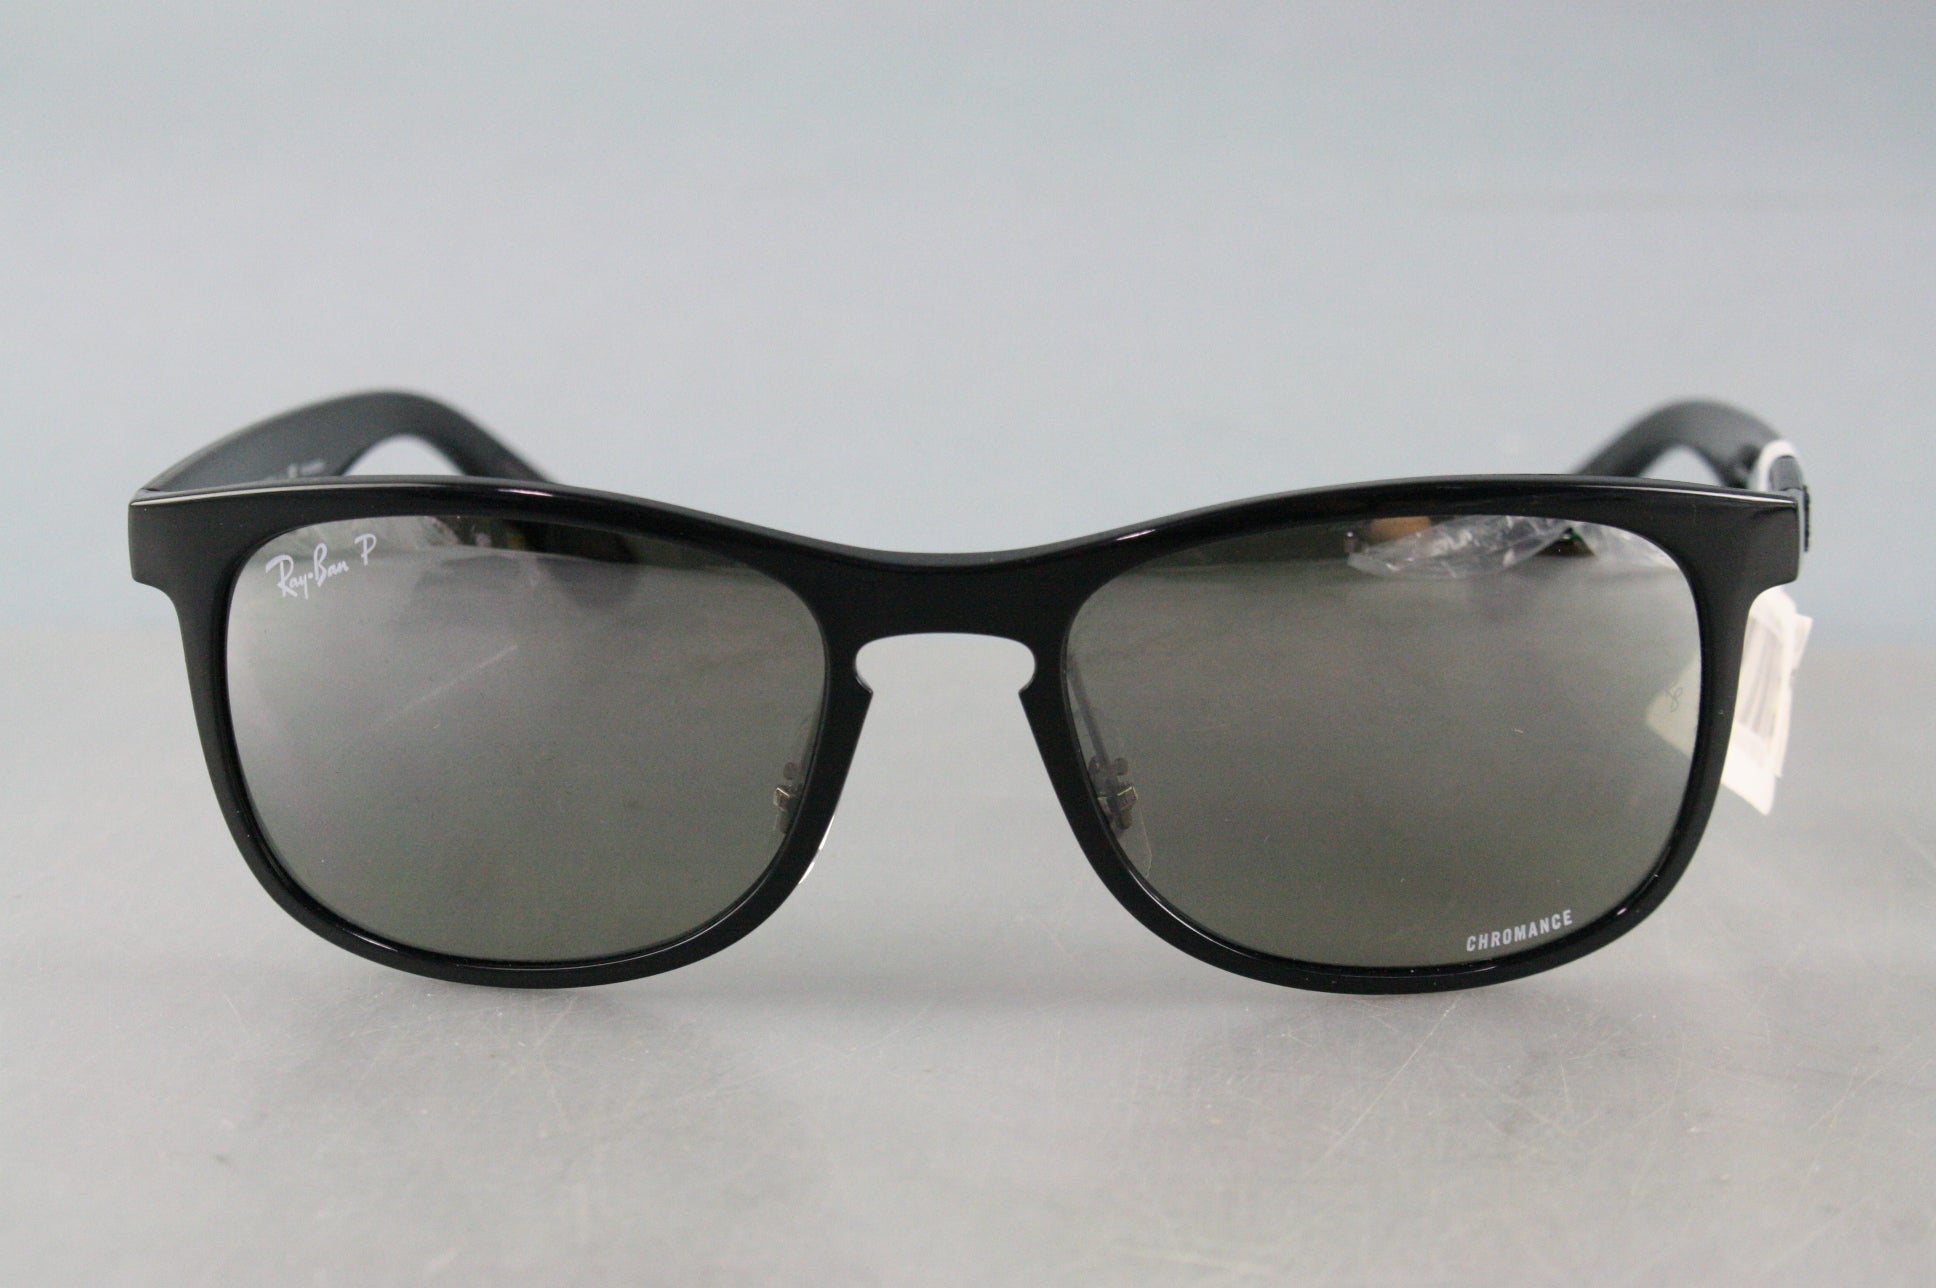 NEW Ray Ban Chromance 4263 Black Silver Mirror Polarized RB4263 601/5J 55-18